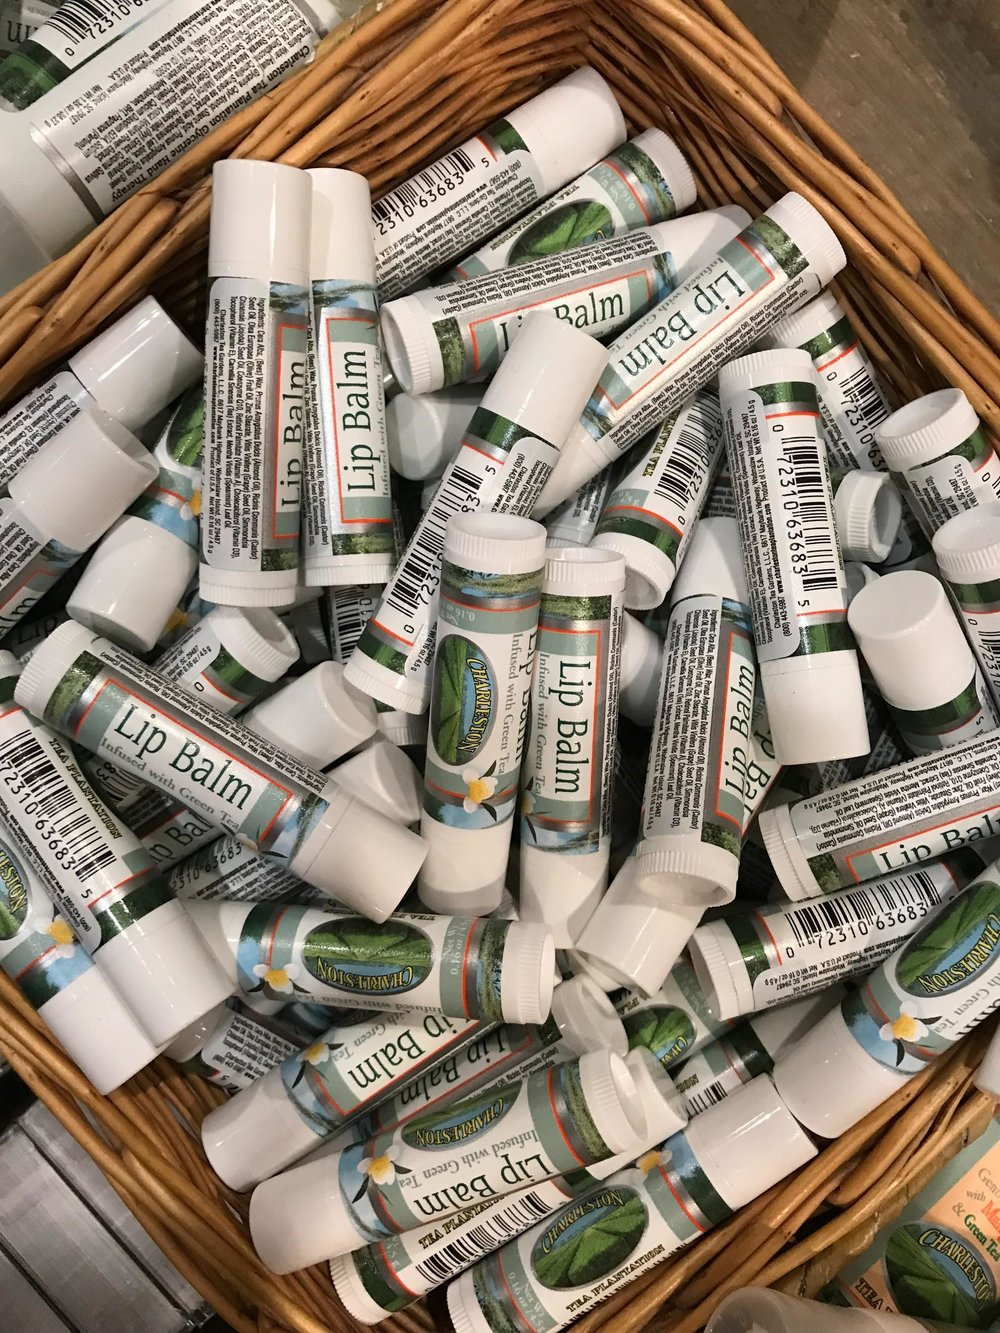 charleston tea plantation lip balm